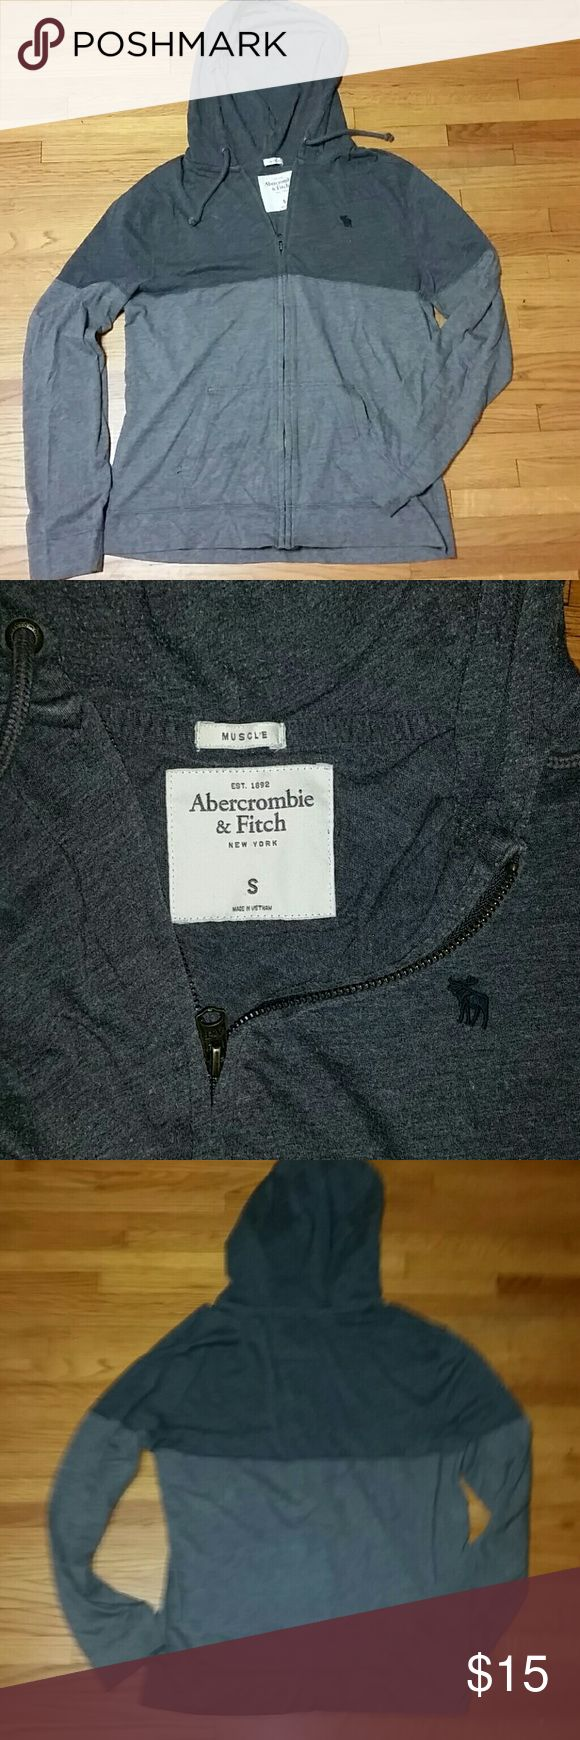 Abercrombie & Fitch size small grave condition Abercrombie & Fitch Grey zip-up hoodie size small men's great condition Abercrombie & Fitch Jackets & Coats